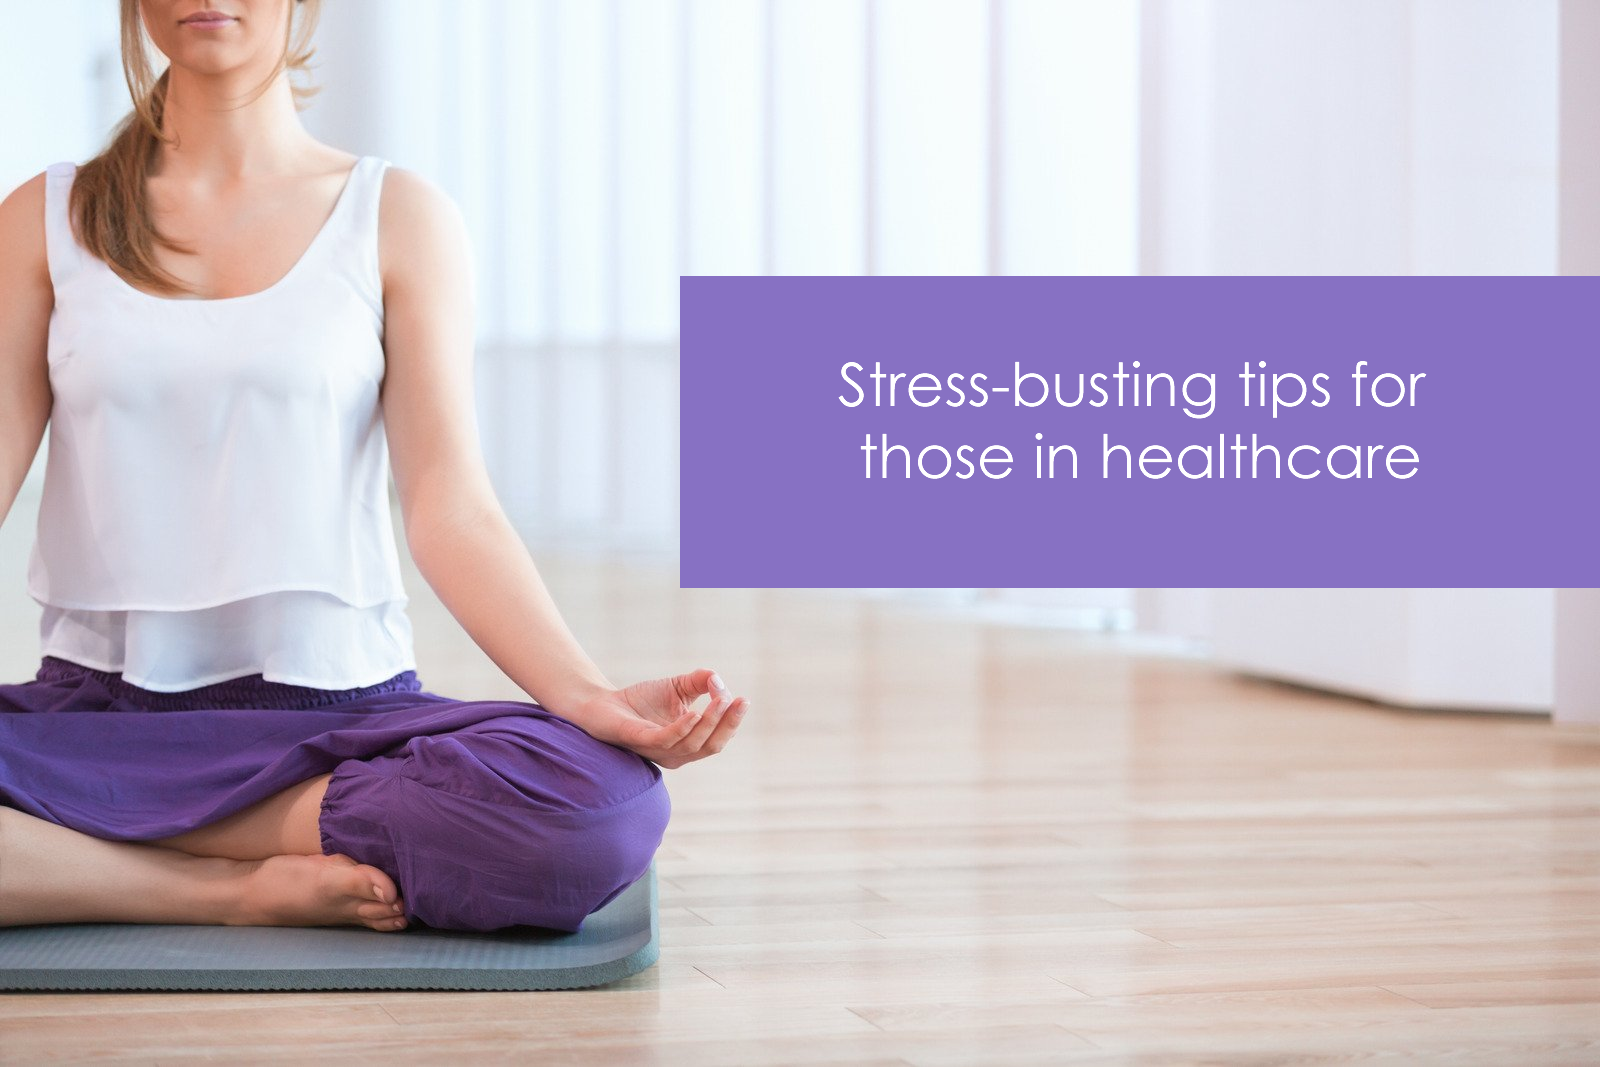 Stress-busting tips for those in healthcare